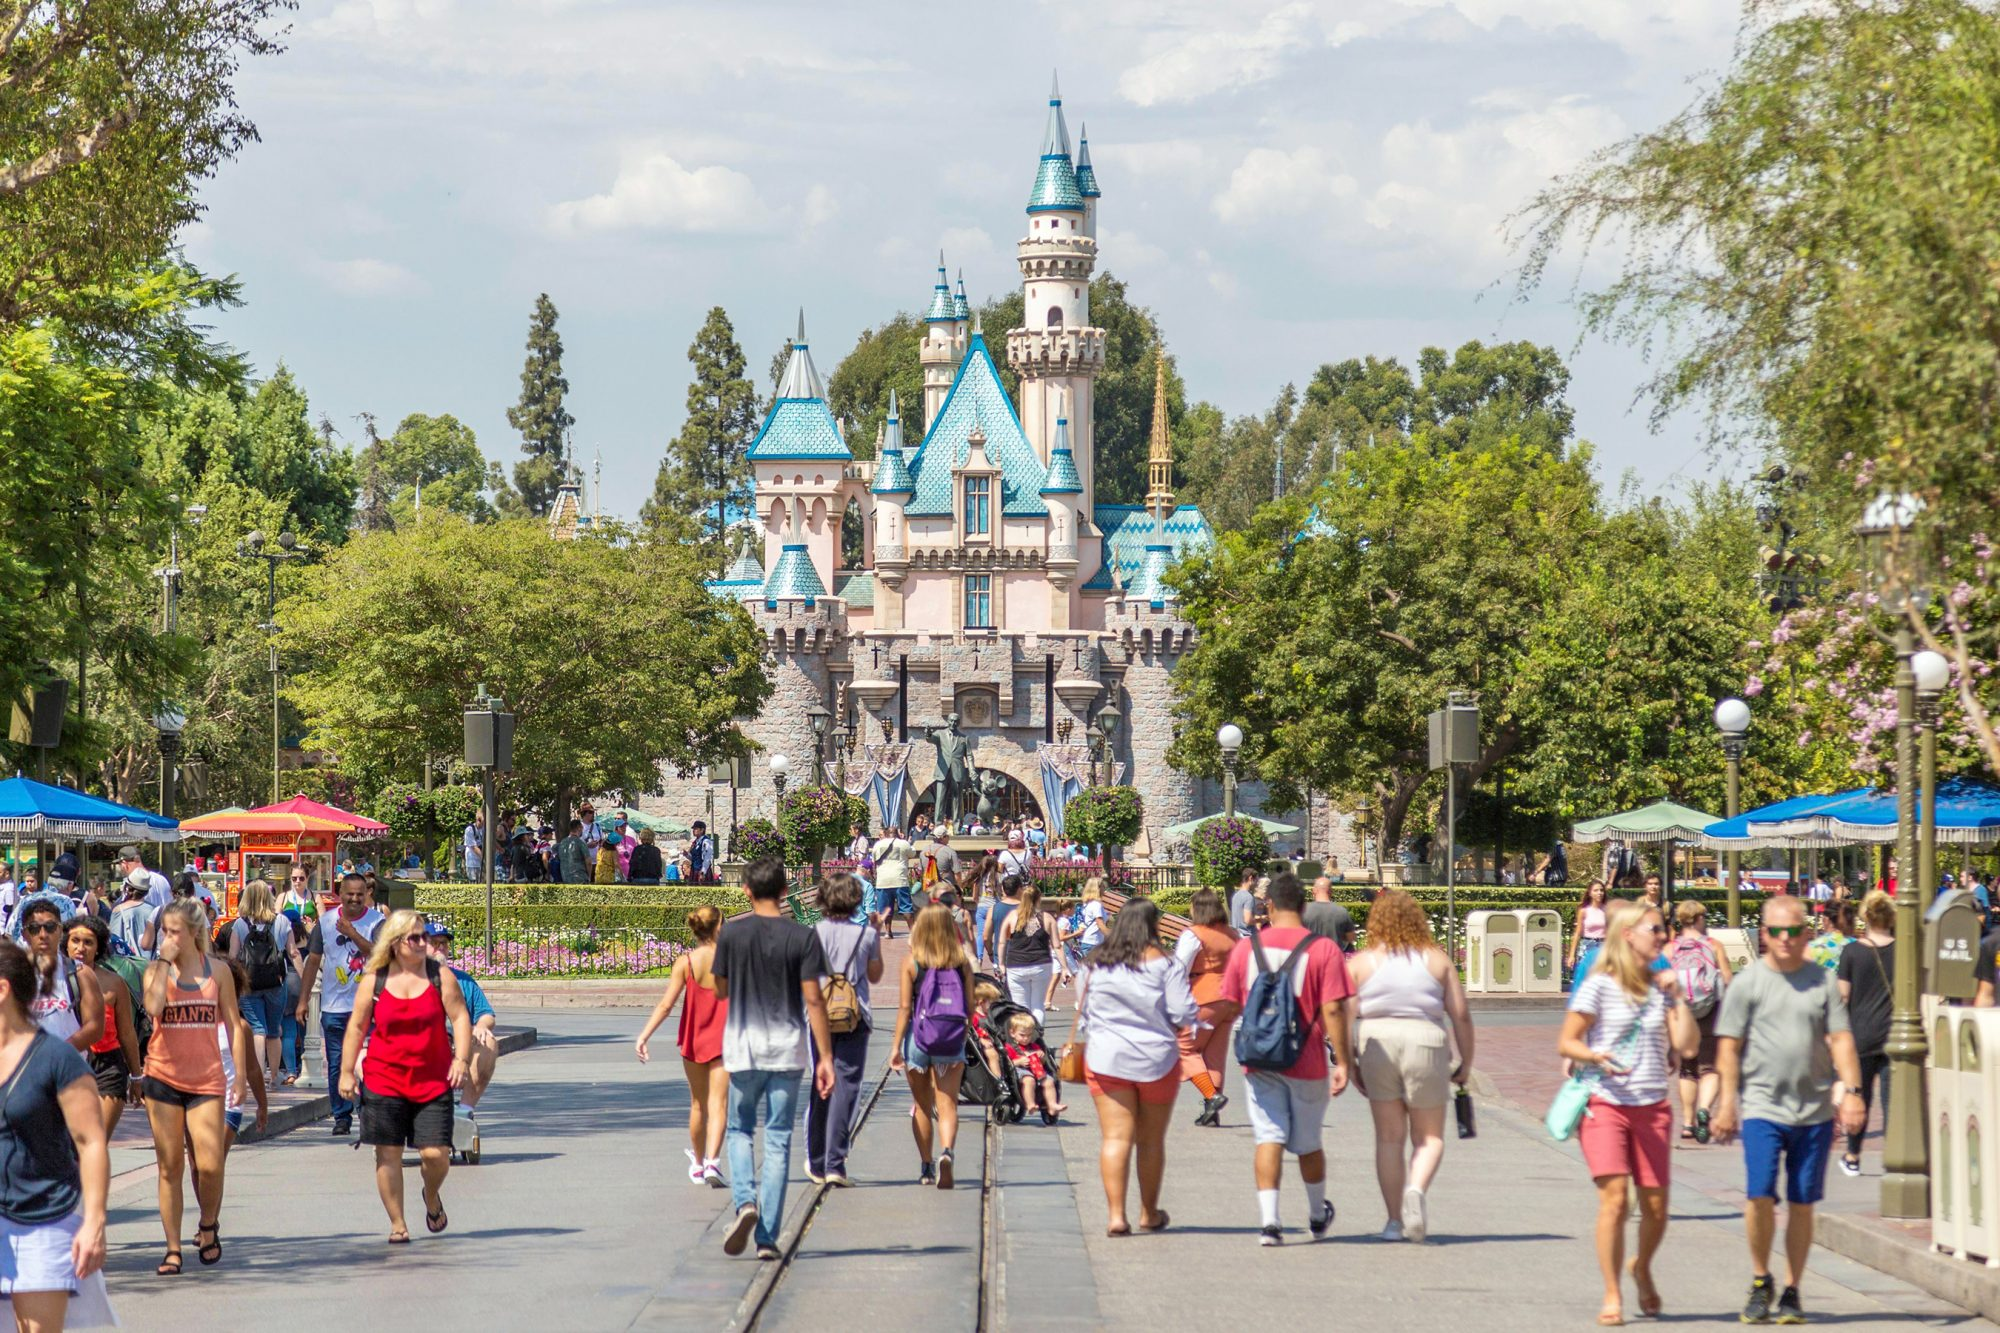 Disneyland Resort, Anaheim, California